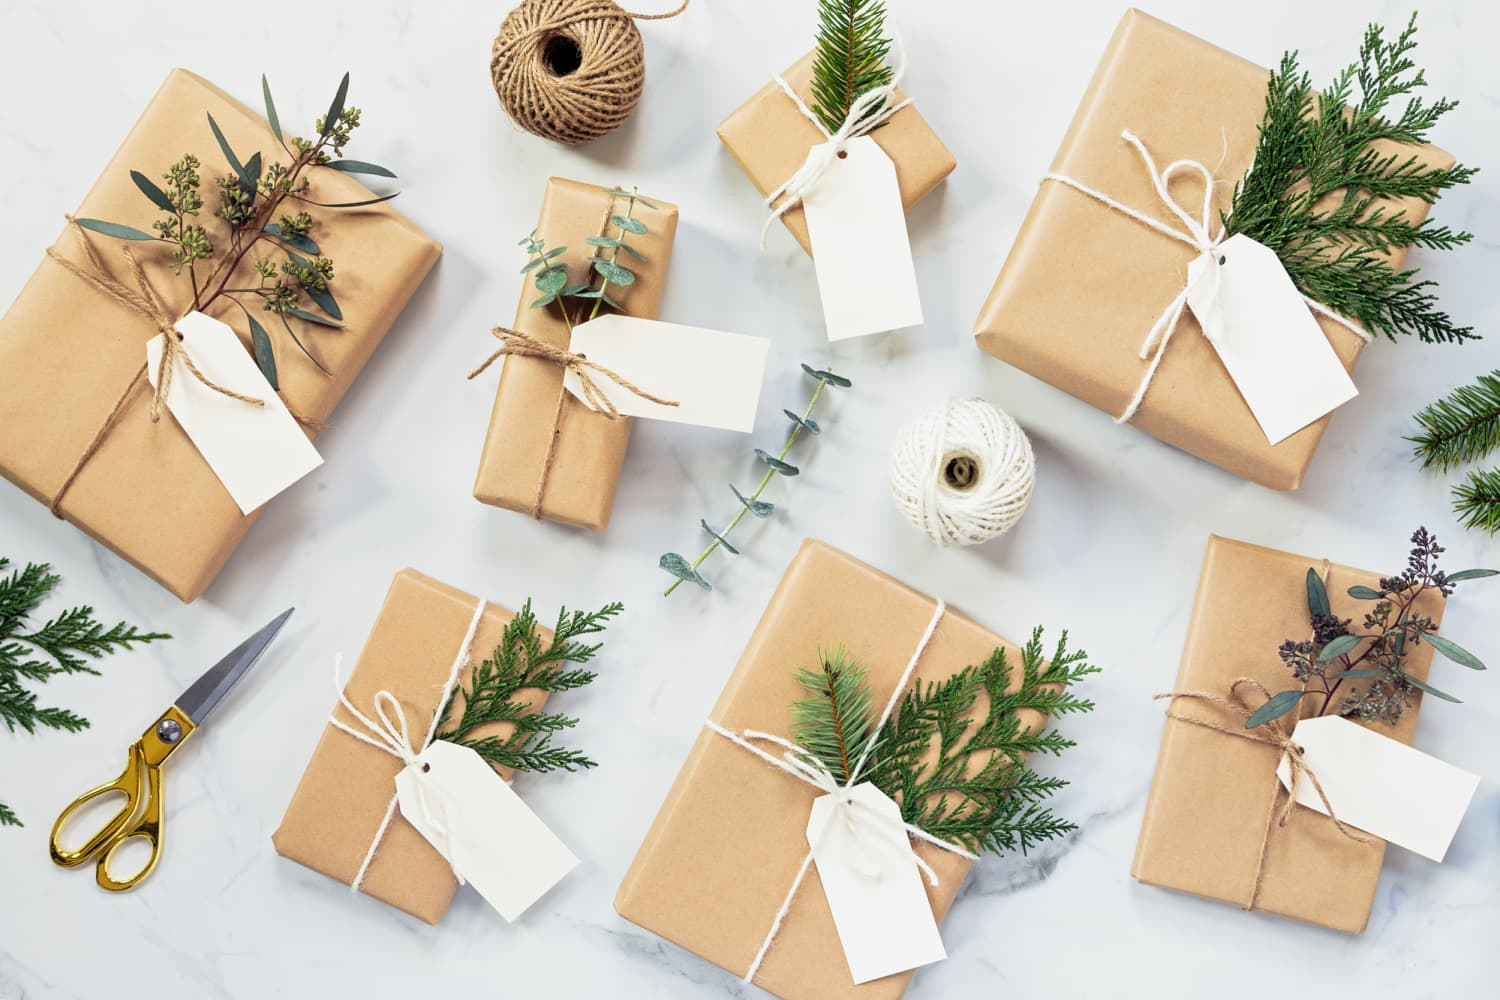 6 Ways to Make Holiday Gifting Easy, Affordable, and Punctual